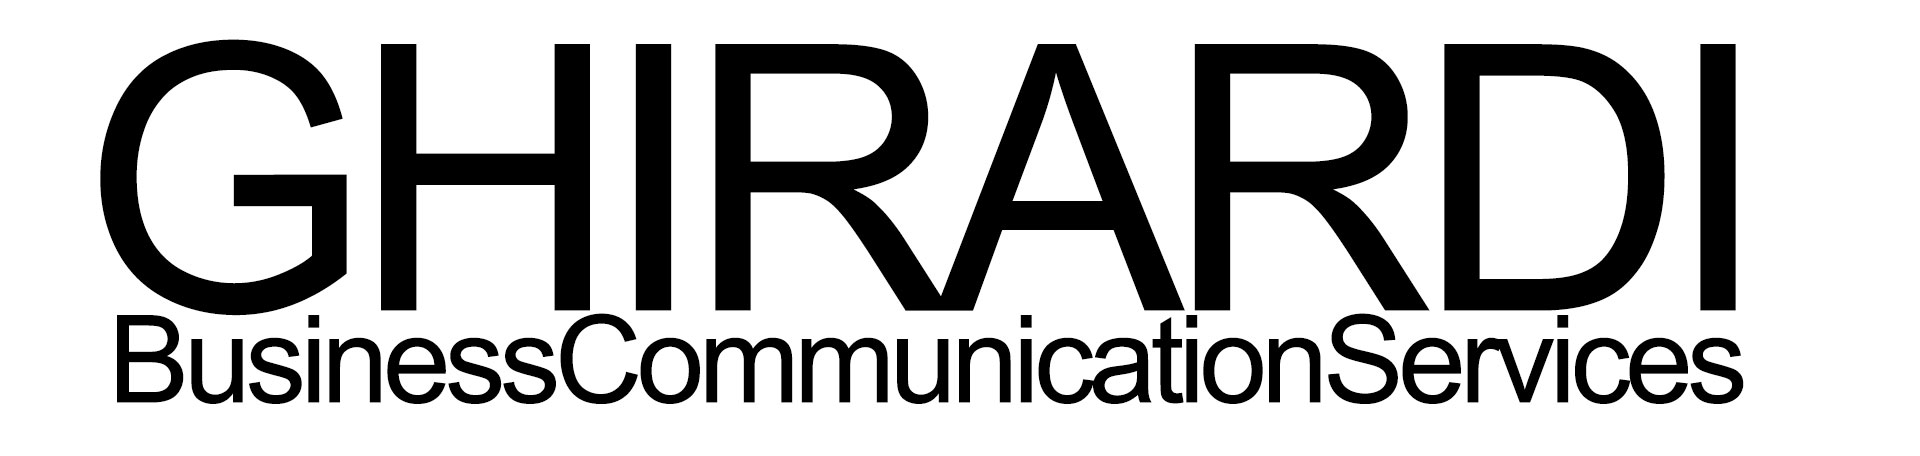 Ghirardi Business Communication Services